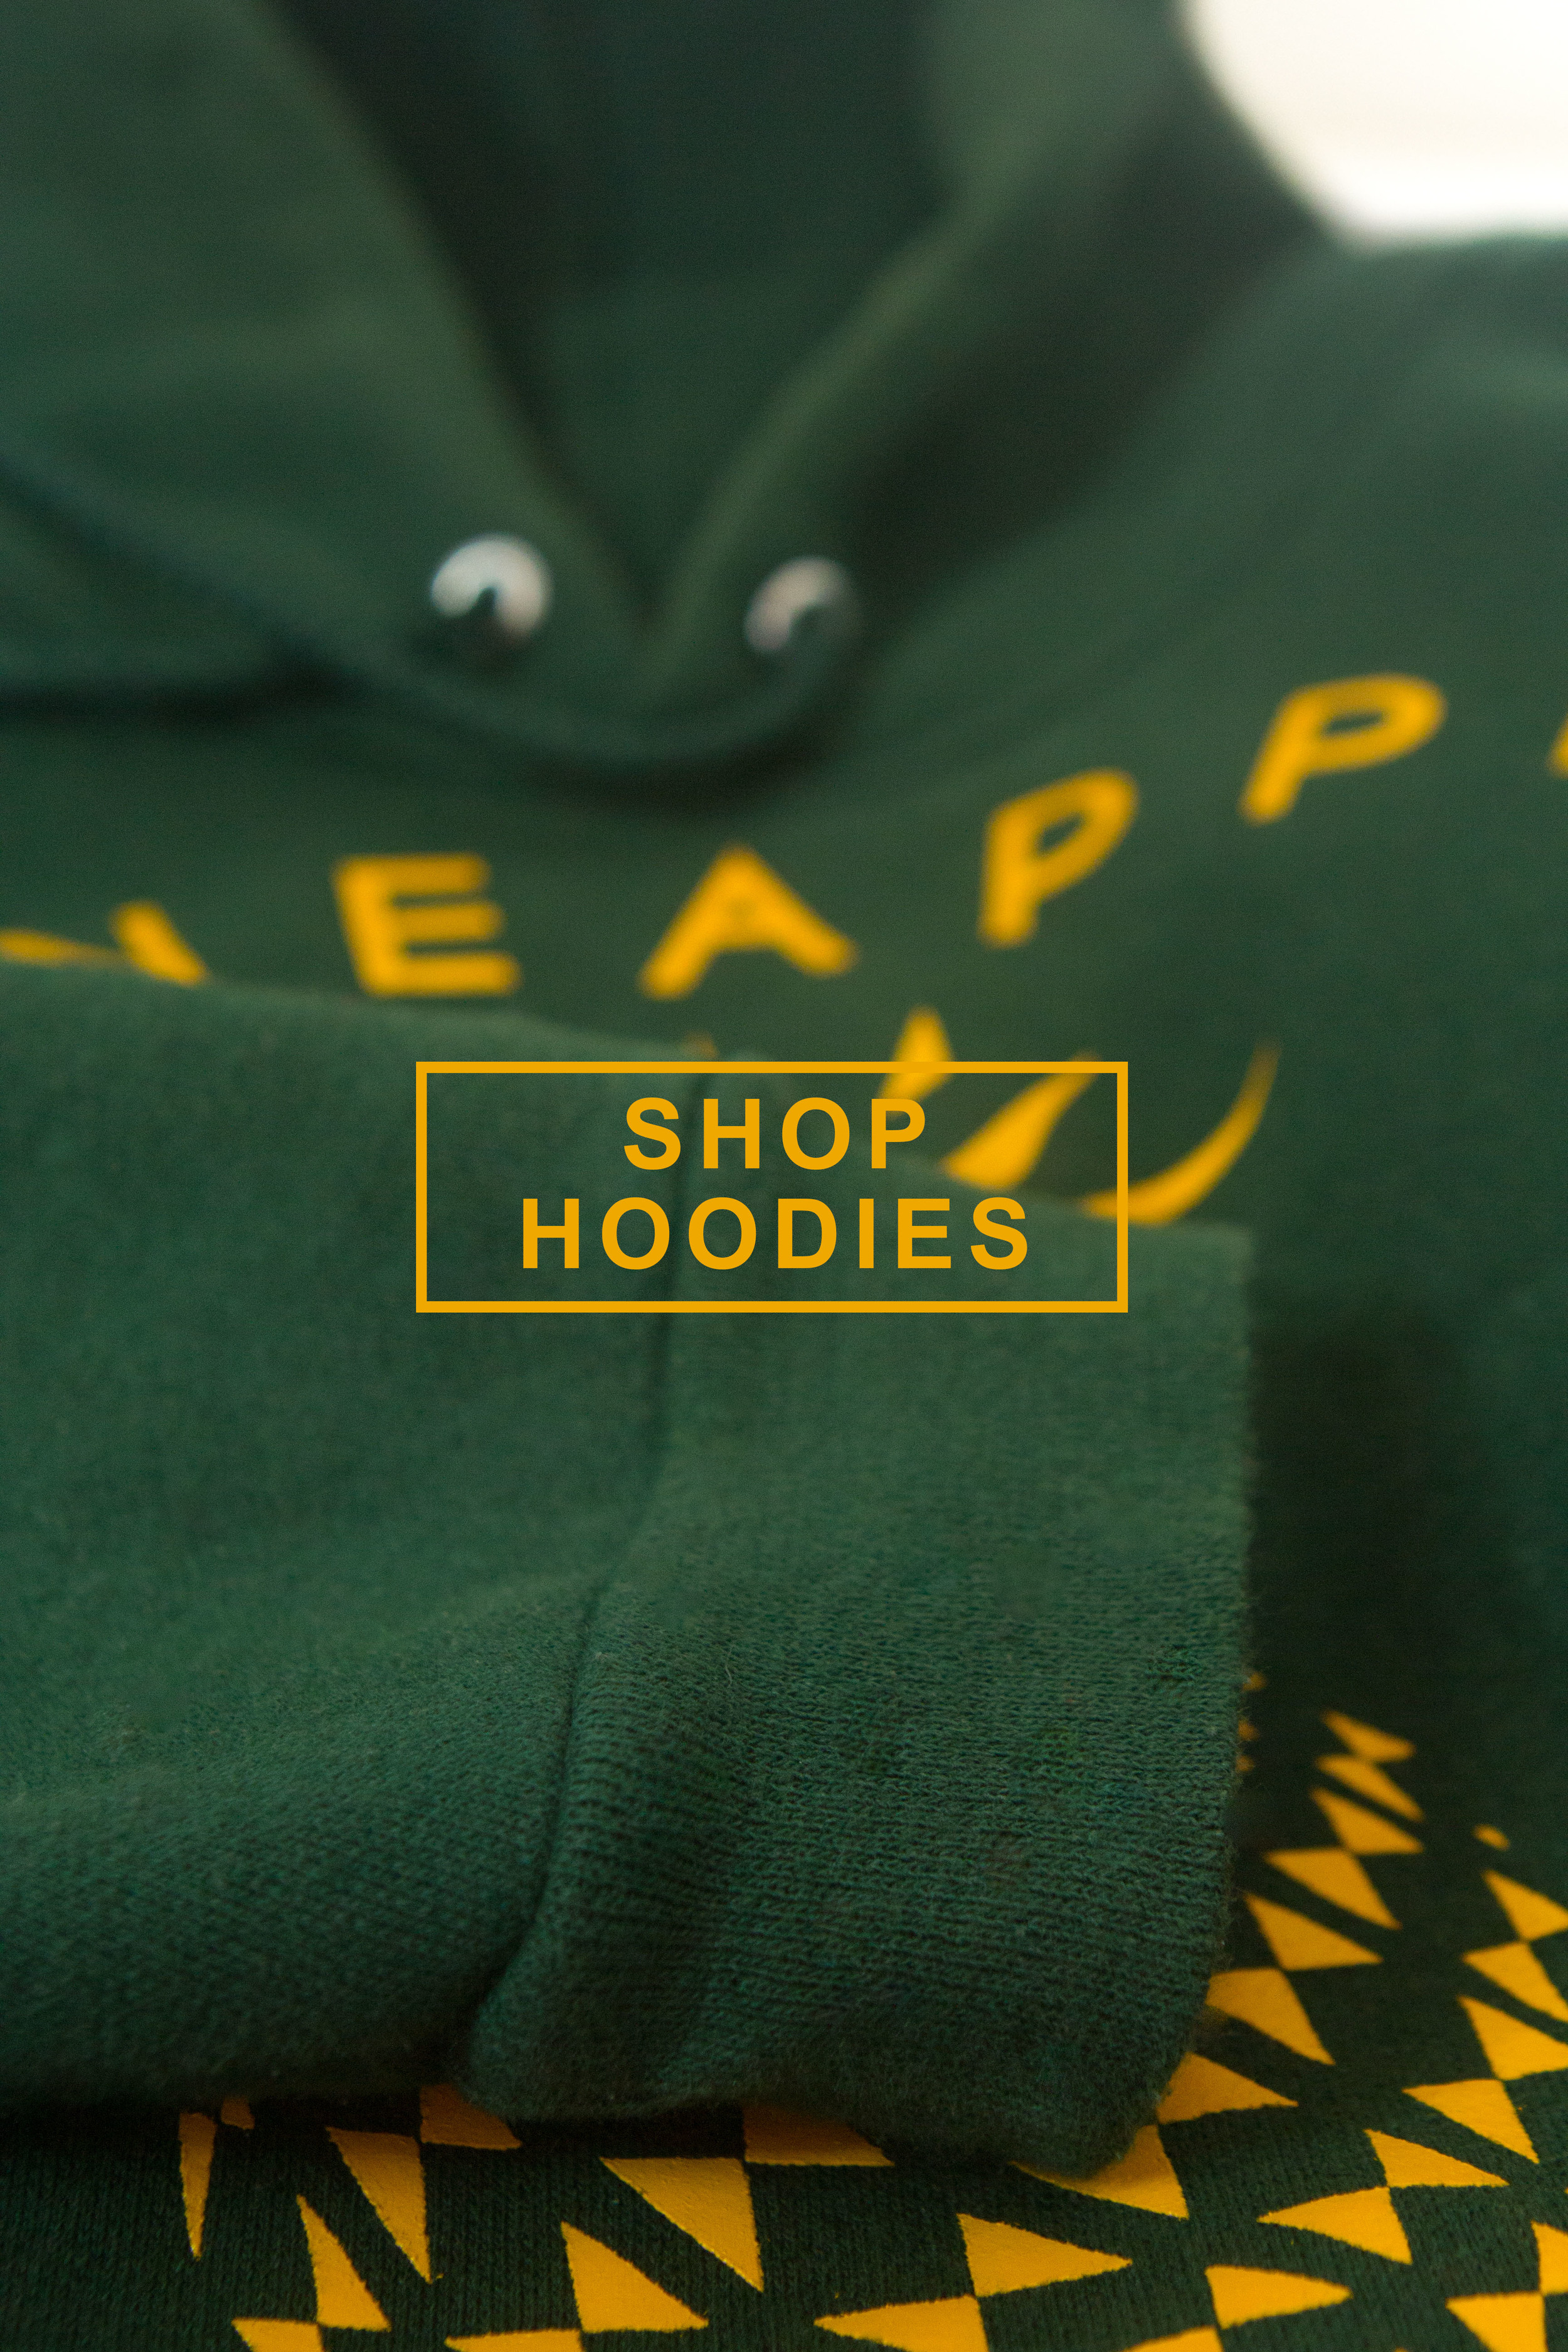 IMG_0016-shophoodies.jpg